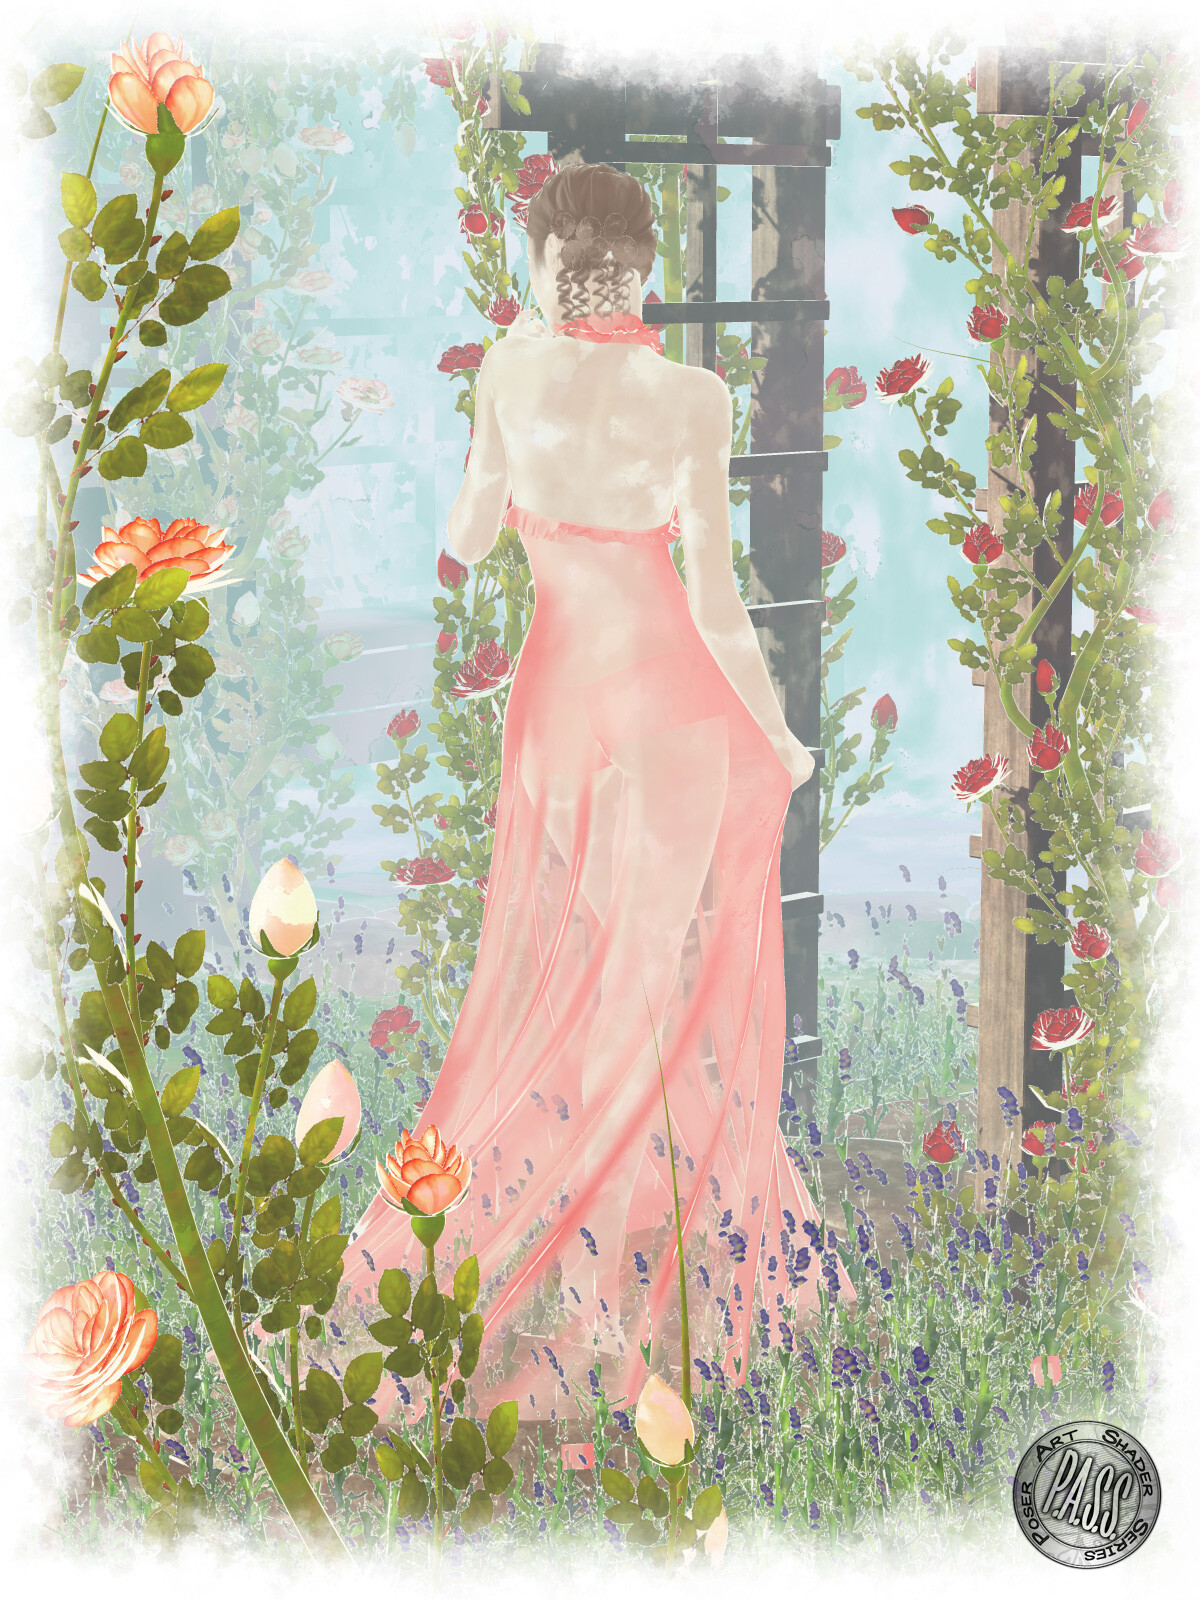 An example of the flower, small foliage, large foliage, skin, hair, fabric, and sheer fabric shaders, and the depth cue backgrounds.